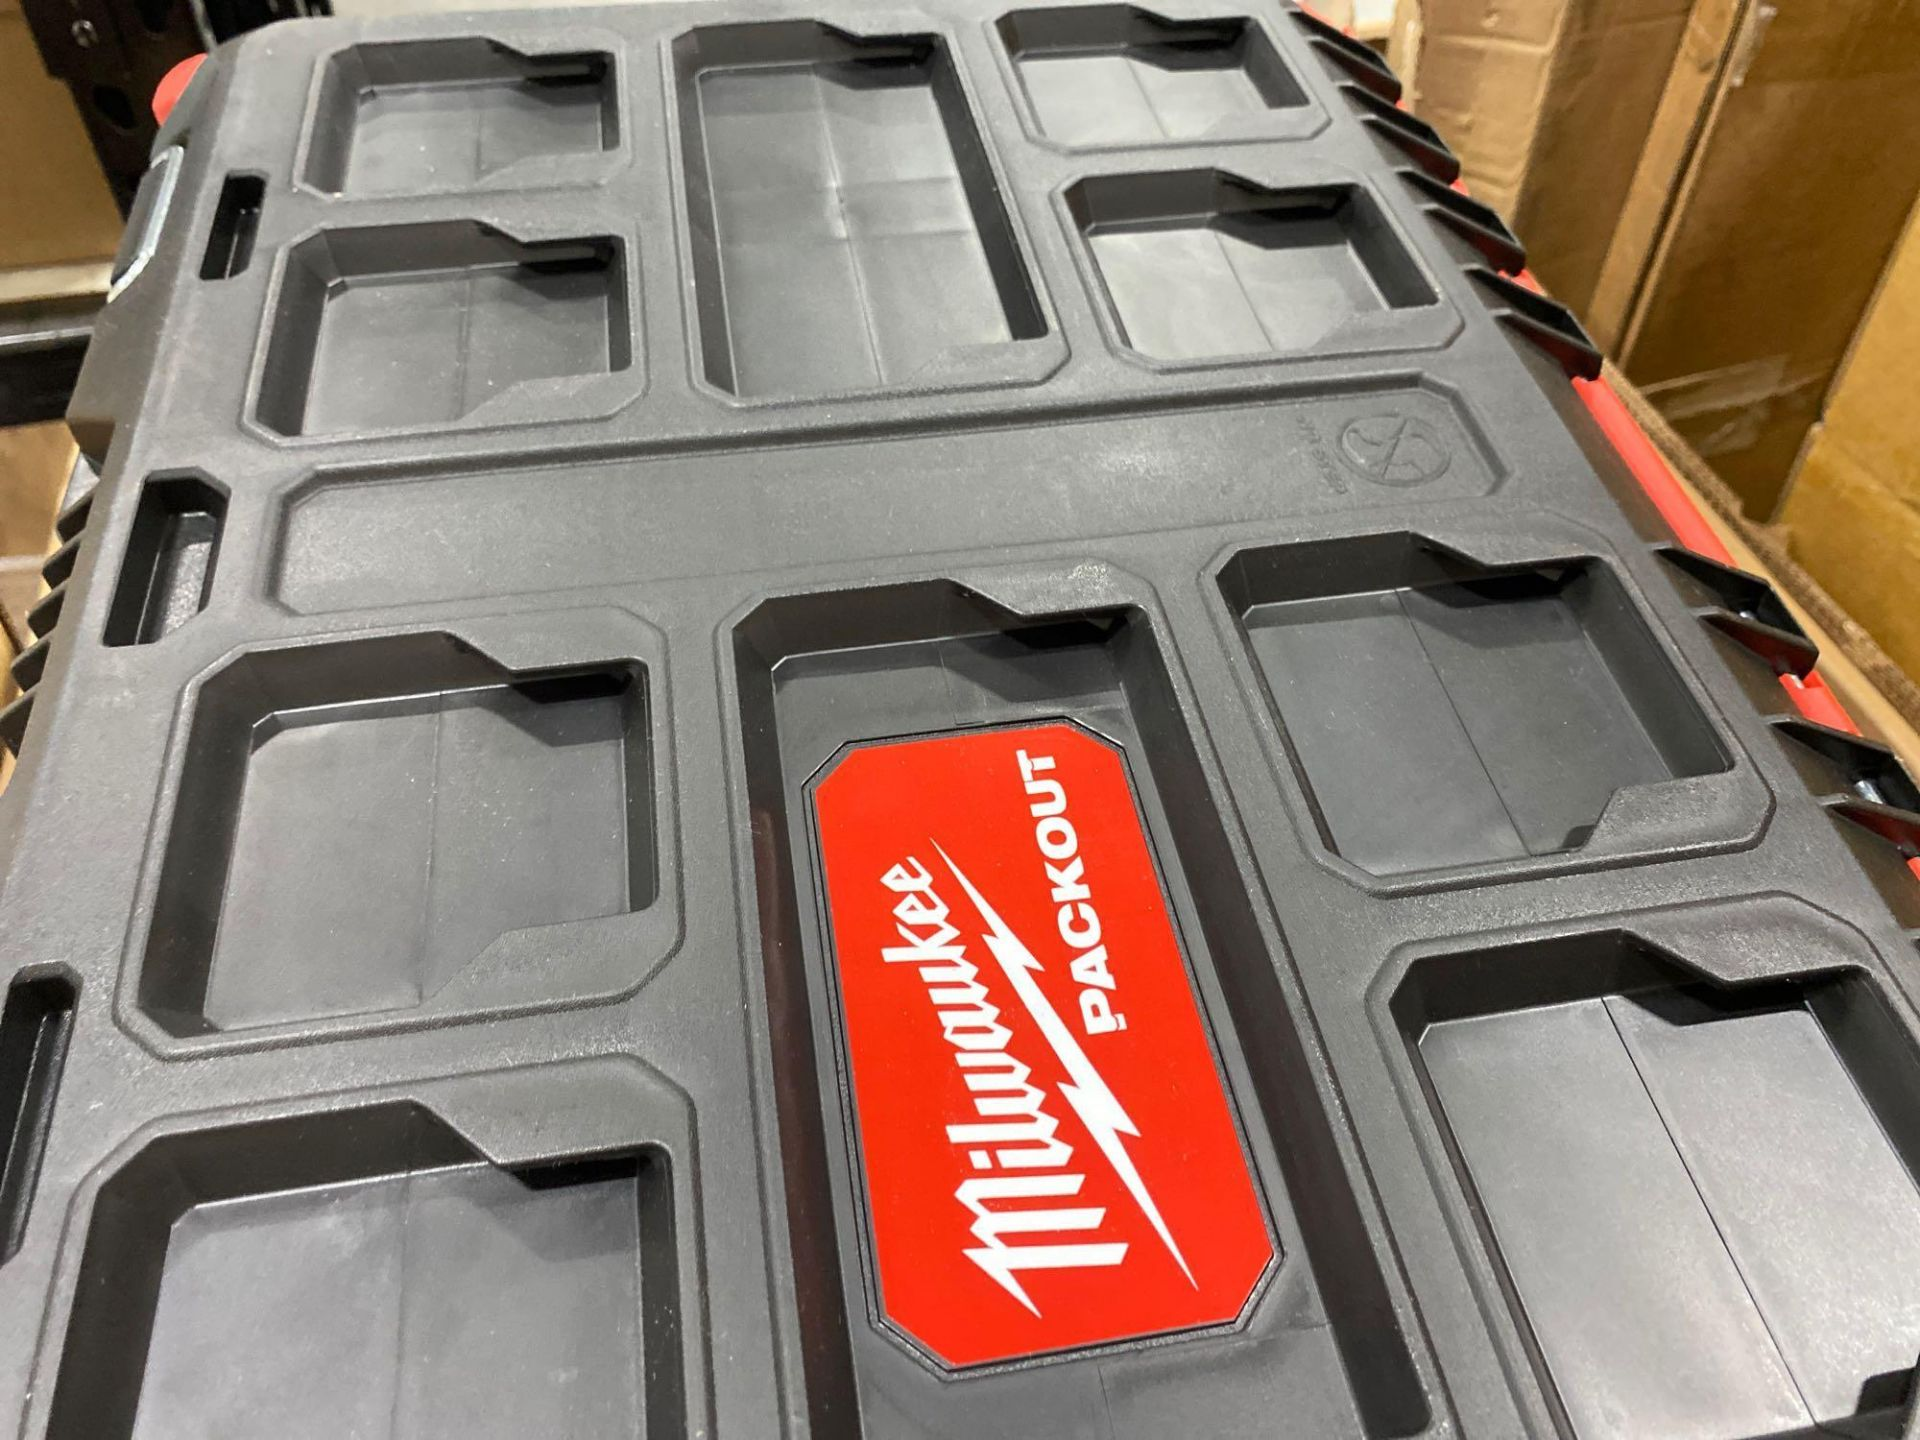 Two Pallets - Image 3 of 6